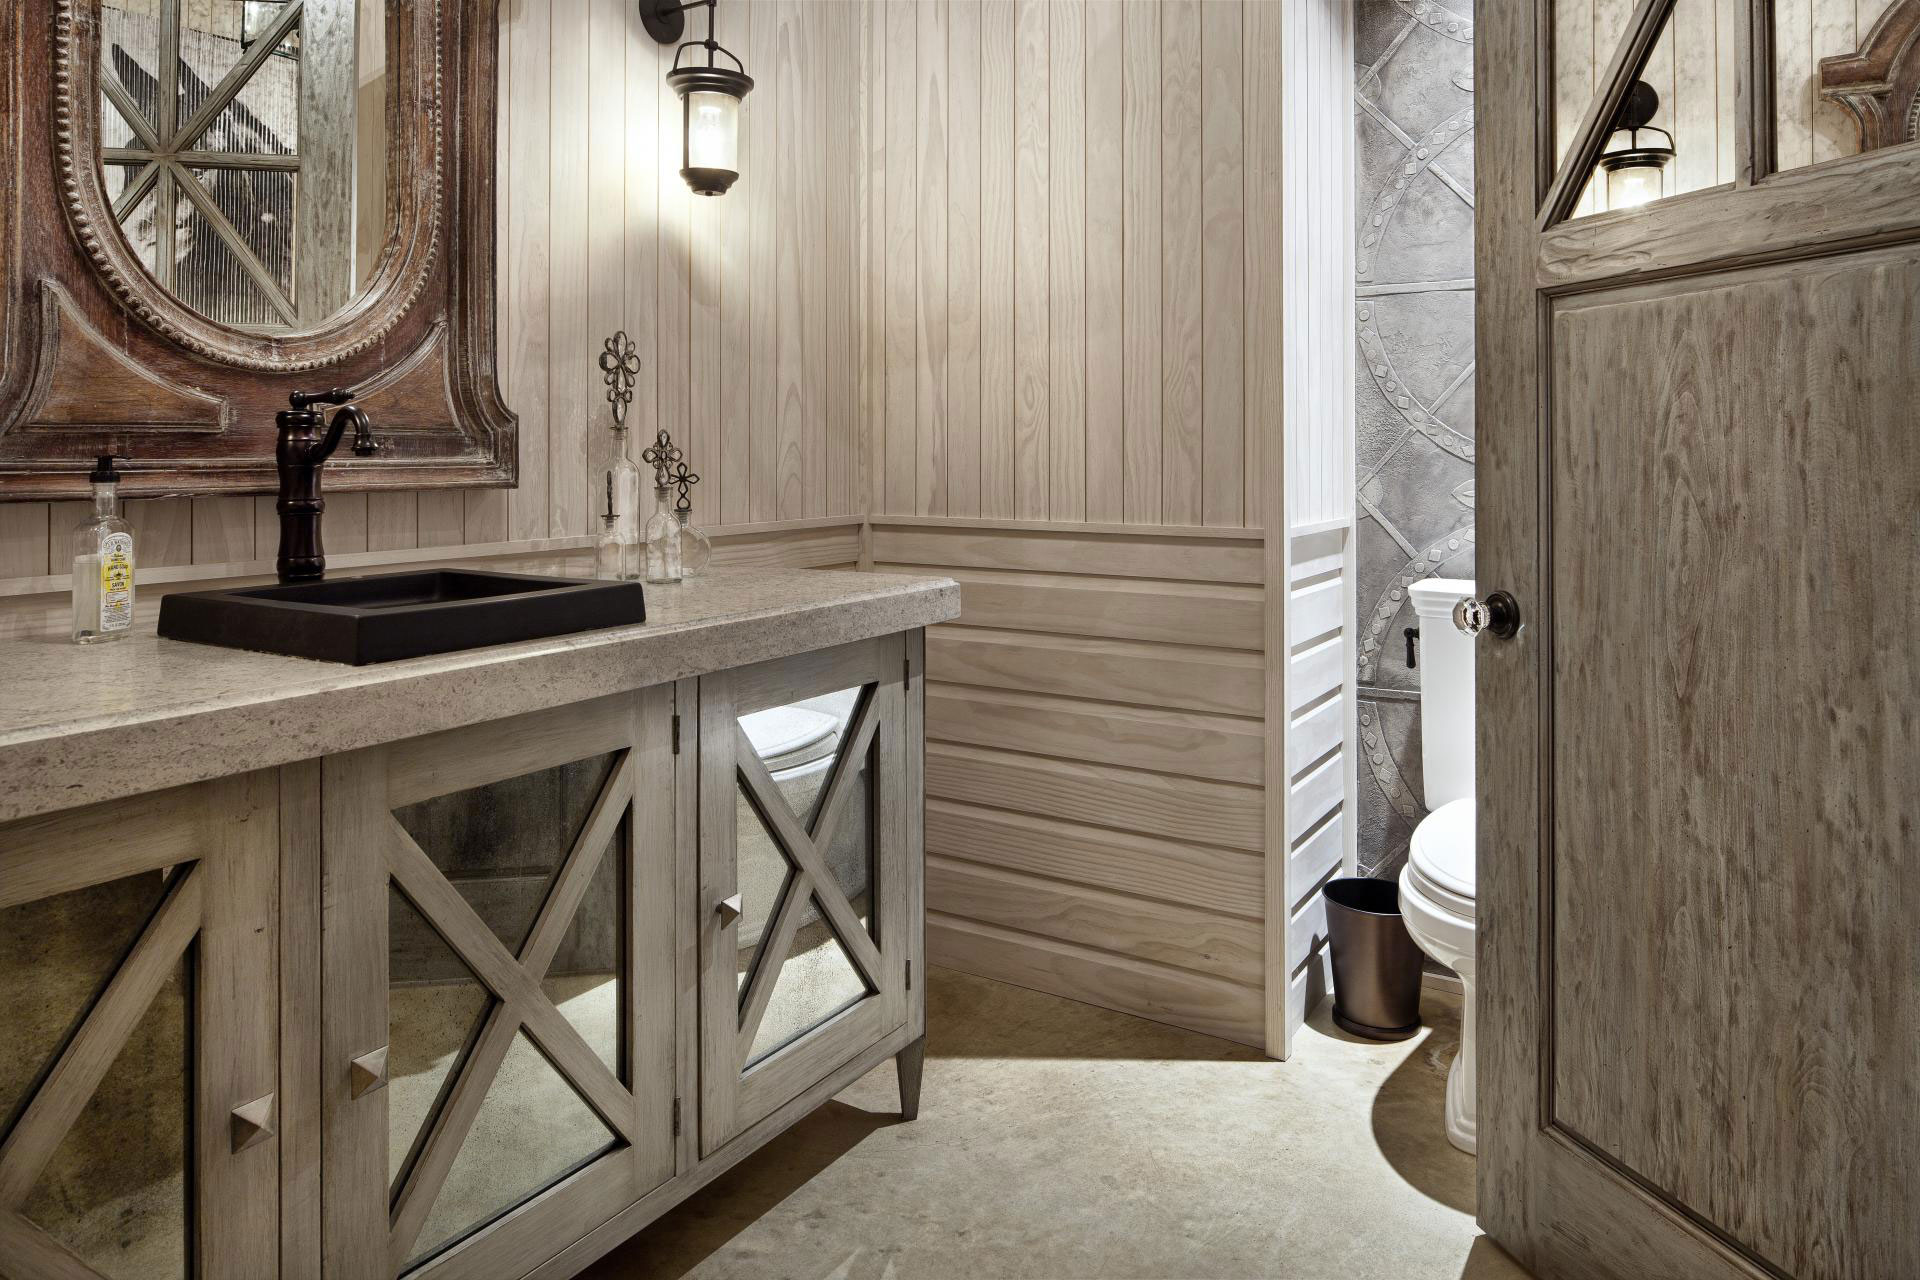 bathroom-simple-country-remodel-bathroom-lighting-eas-bathroom-country-bathroom-designs